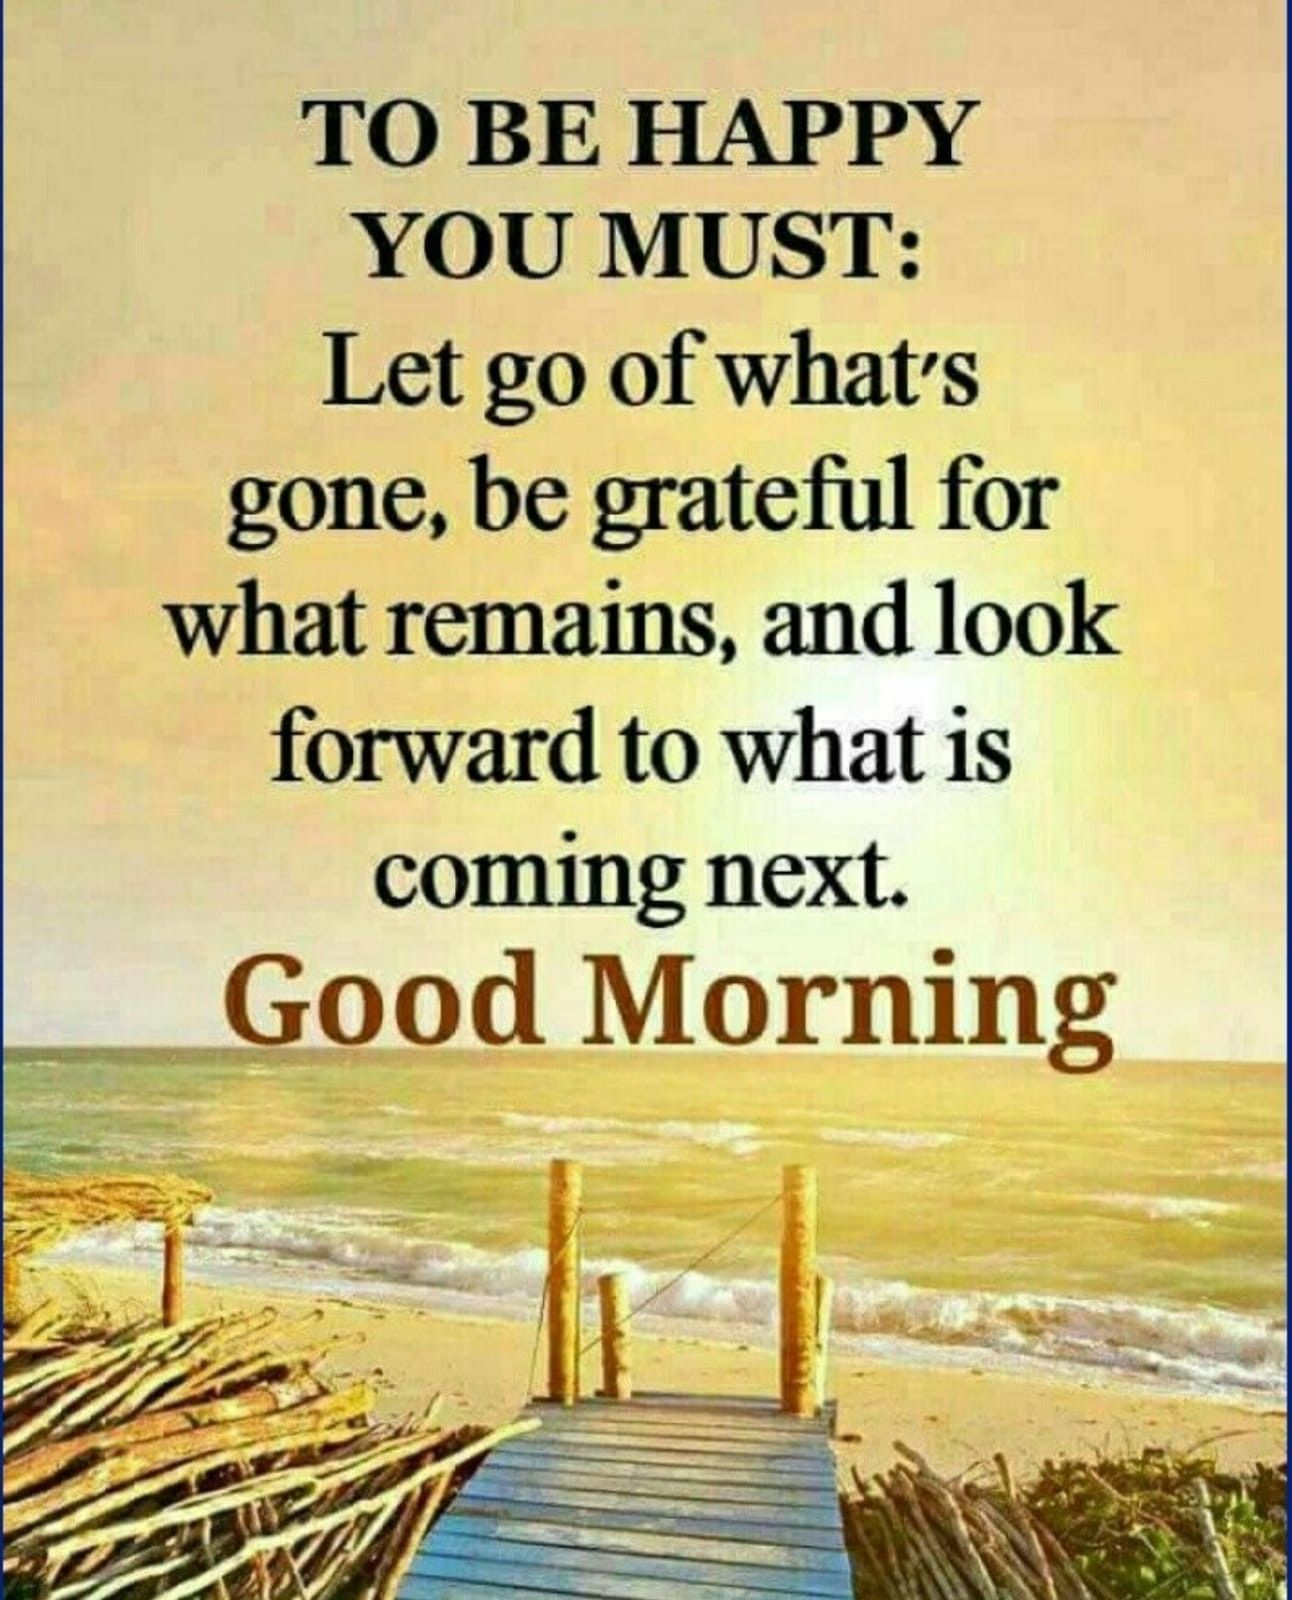 Good Morning Let Go Of What Is Gone Good Morning Prayer Good Morning Quotes Morning Inspirational Quotes